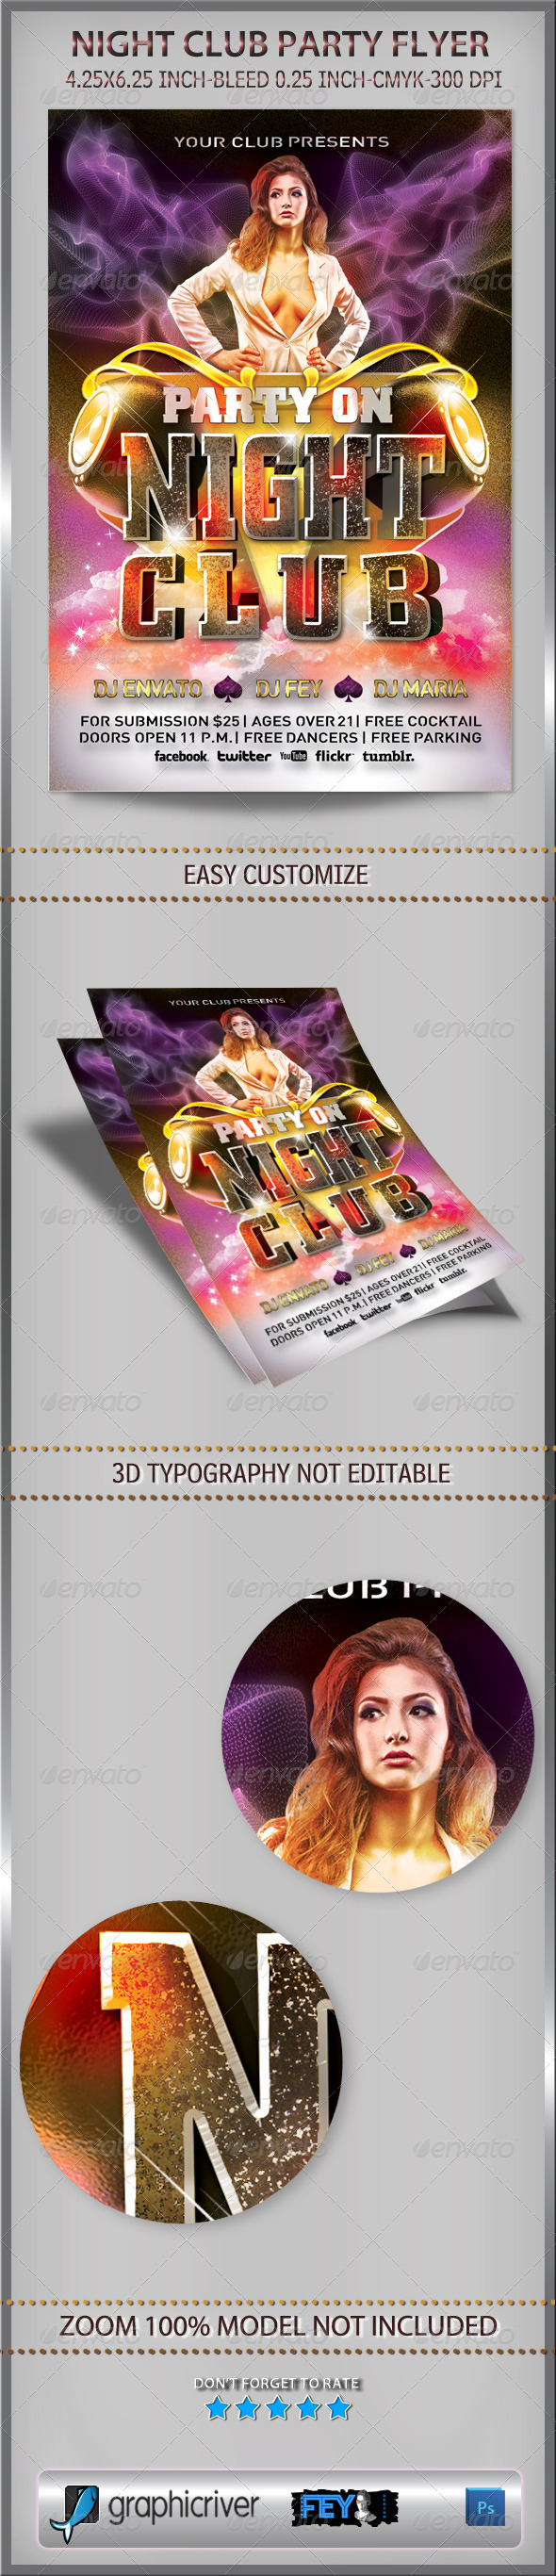 Night Club Party Flyer - Flyers Print Templates